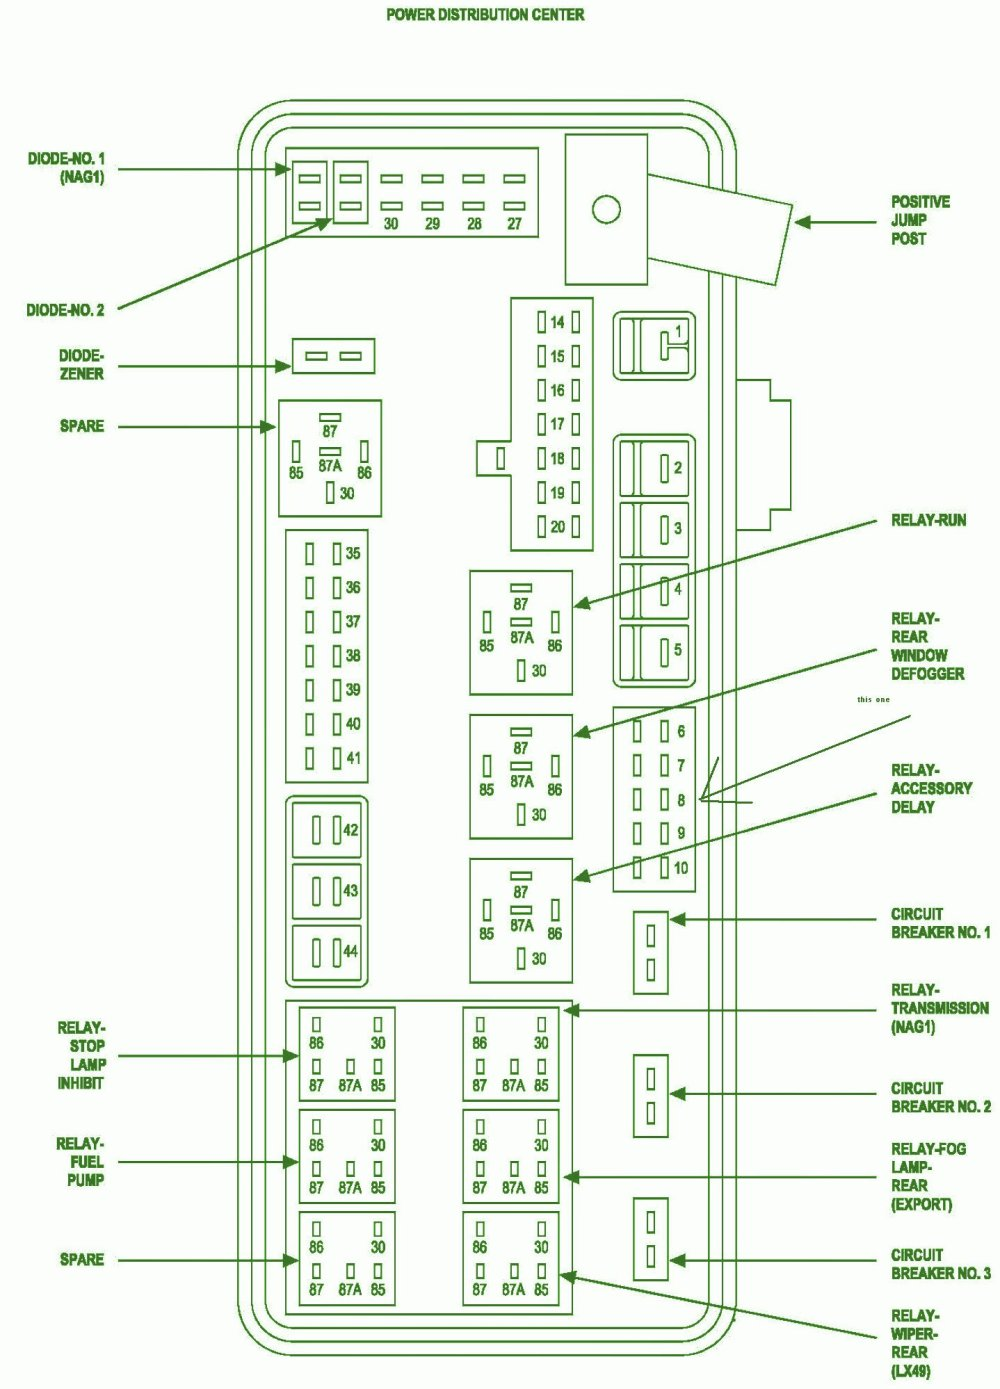 medium resolution of 2008 dodge magnum fuse diagram wiring diagram structure 2008 dodge magnum 2 7l fuse box diagram 08 dodge magnum fuse box diagram